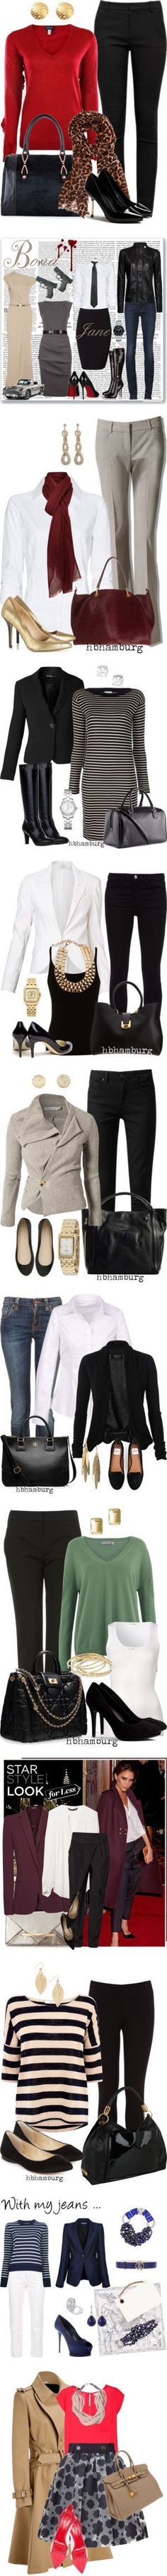 Outfits para ir a trabajar VI by guisella-infantes on Polyvore featuring мода, Helmut Lang, Armani Jeans, Ted Baker, Oasis, KaufmanFranco, MANGO, J Brand, Christian Louboutin and Witchery #manoloblahnikheelsfallwinter #manoloblahnikheelschristianlouboutin